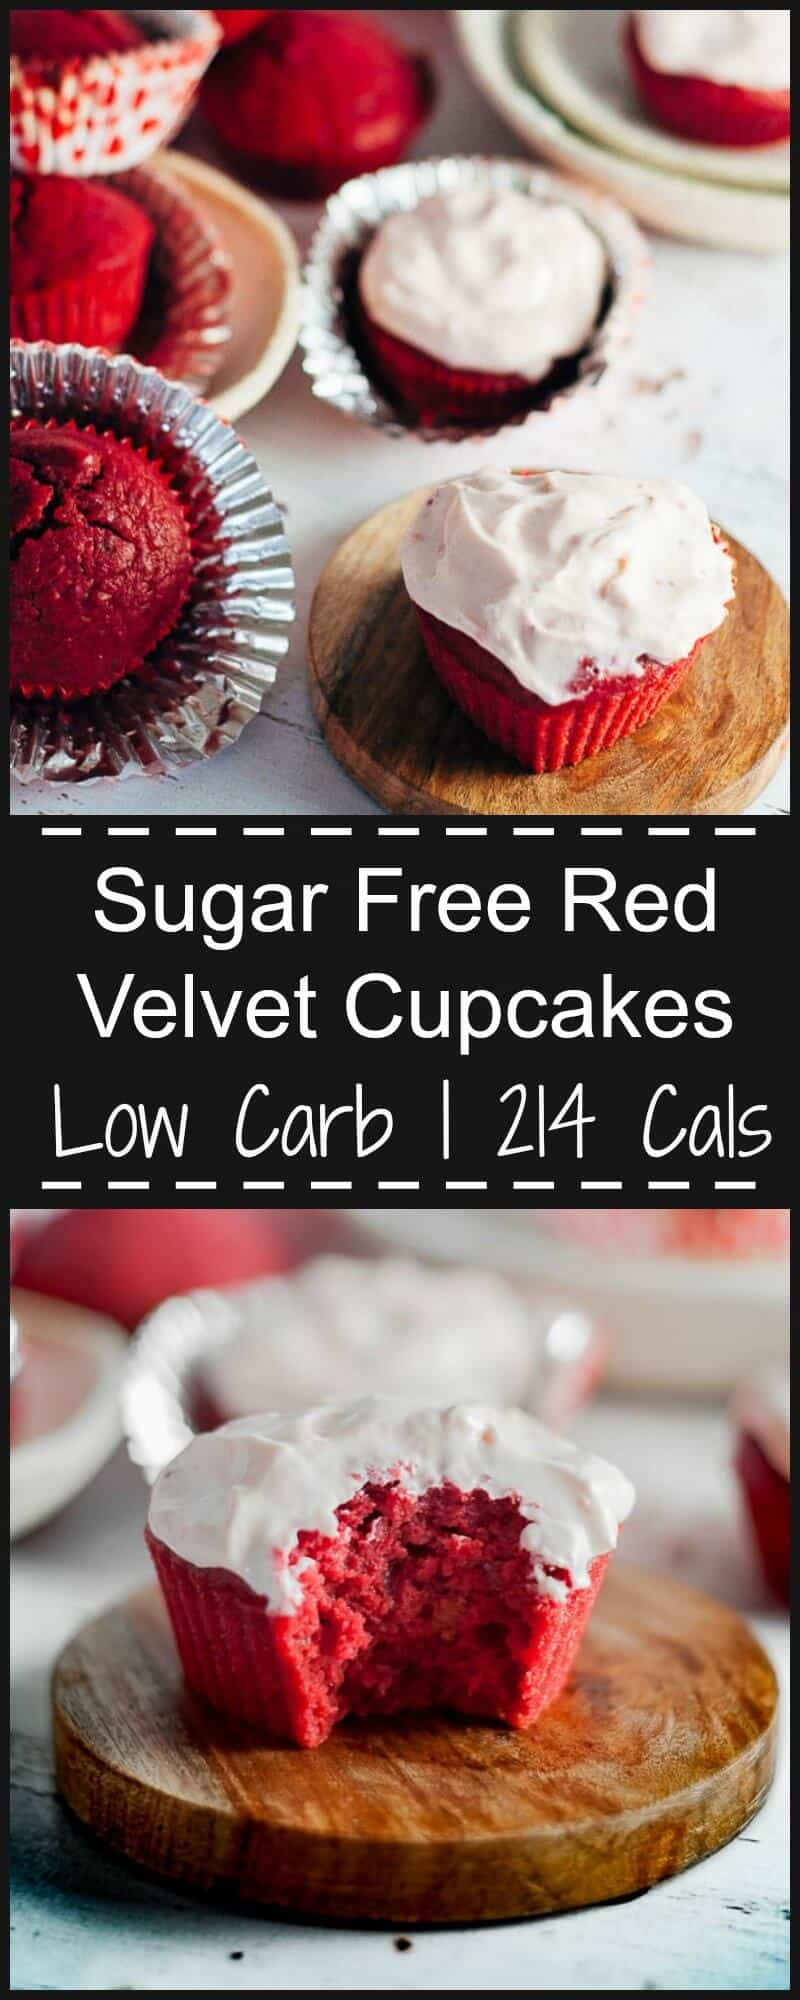 Subtly sweet, deliciously beetroot flavoured, low carb, refined sugar free and utterly mooreish.  These sugar free red velvet cupcakes are the only recipe you'll ever need and will be you go to cake for special occasions.  Easy to make, and done in 30 minutes.  Freezes well.